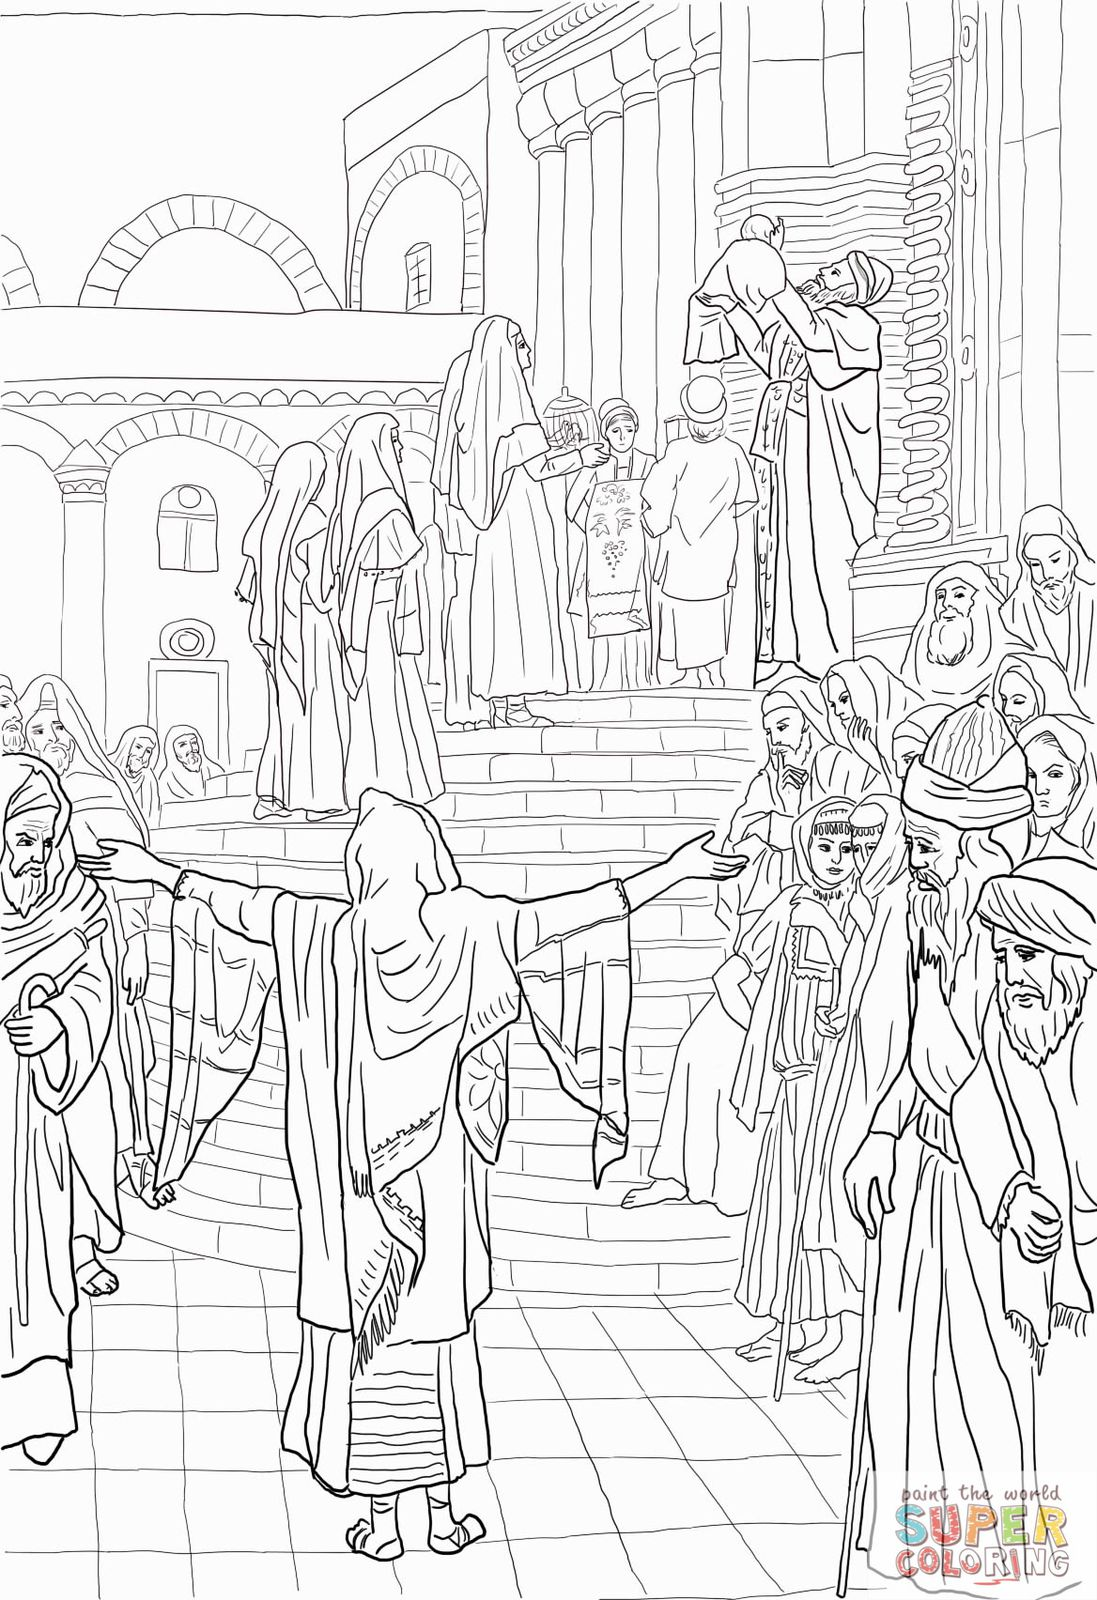 487 best Catholic Coloring Pages